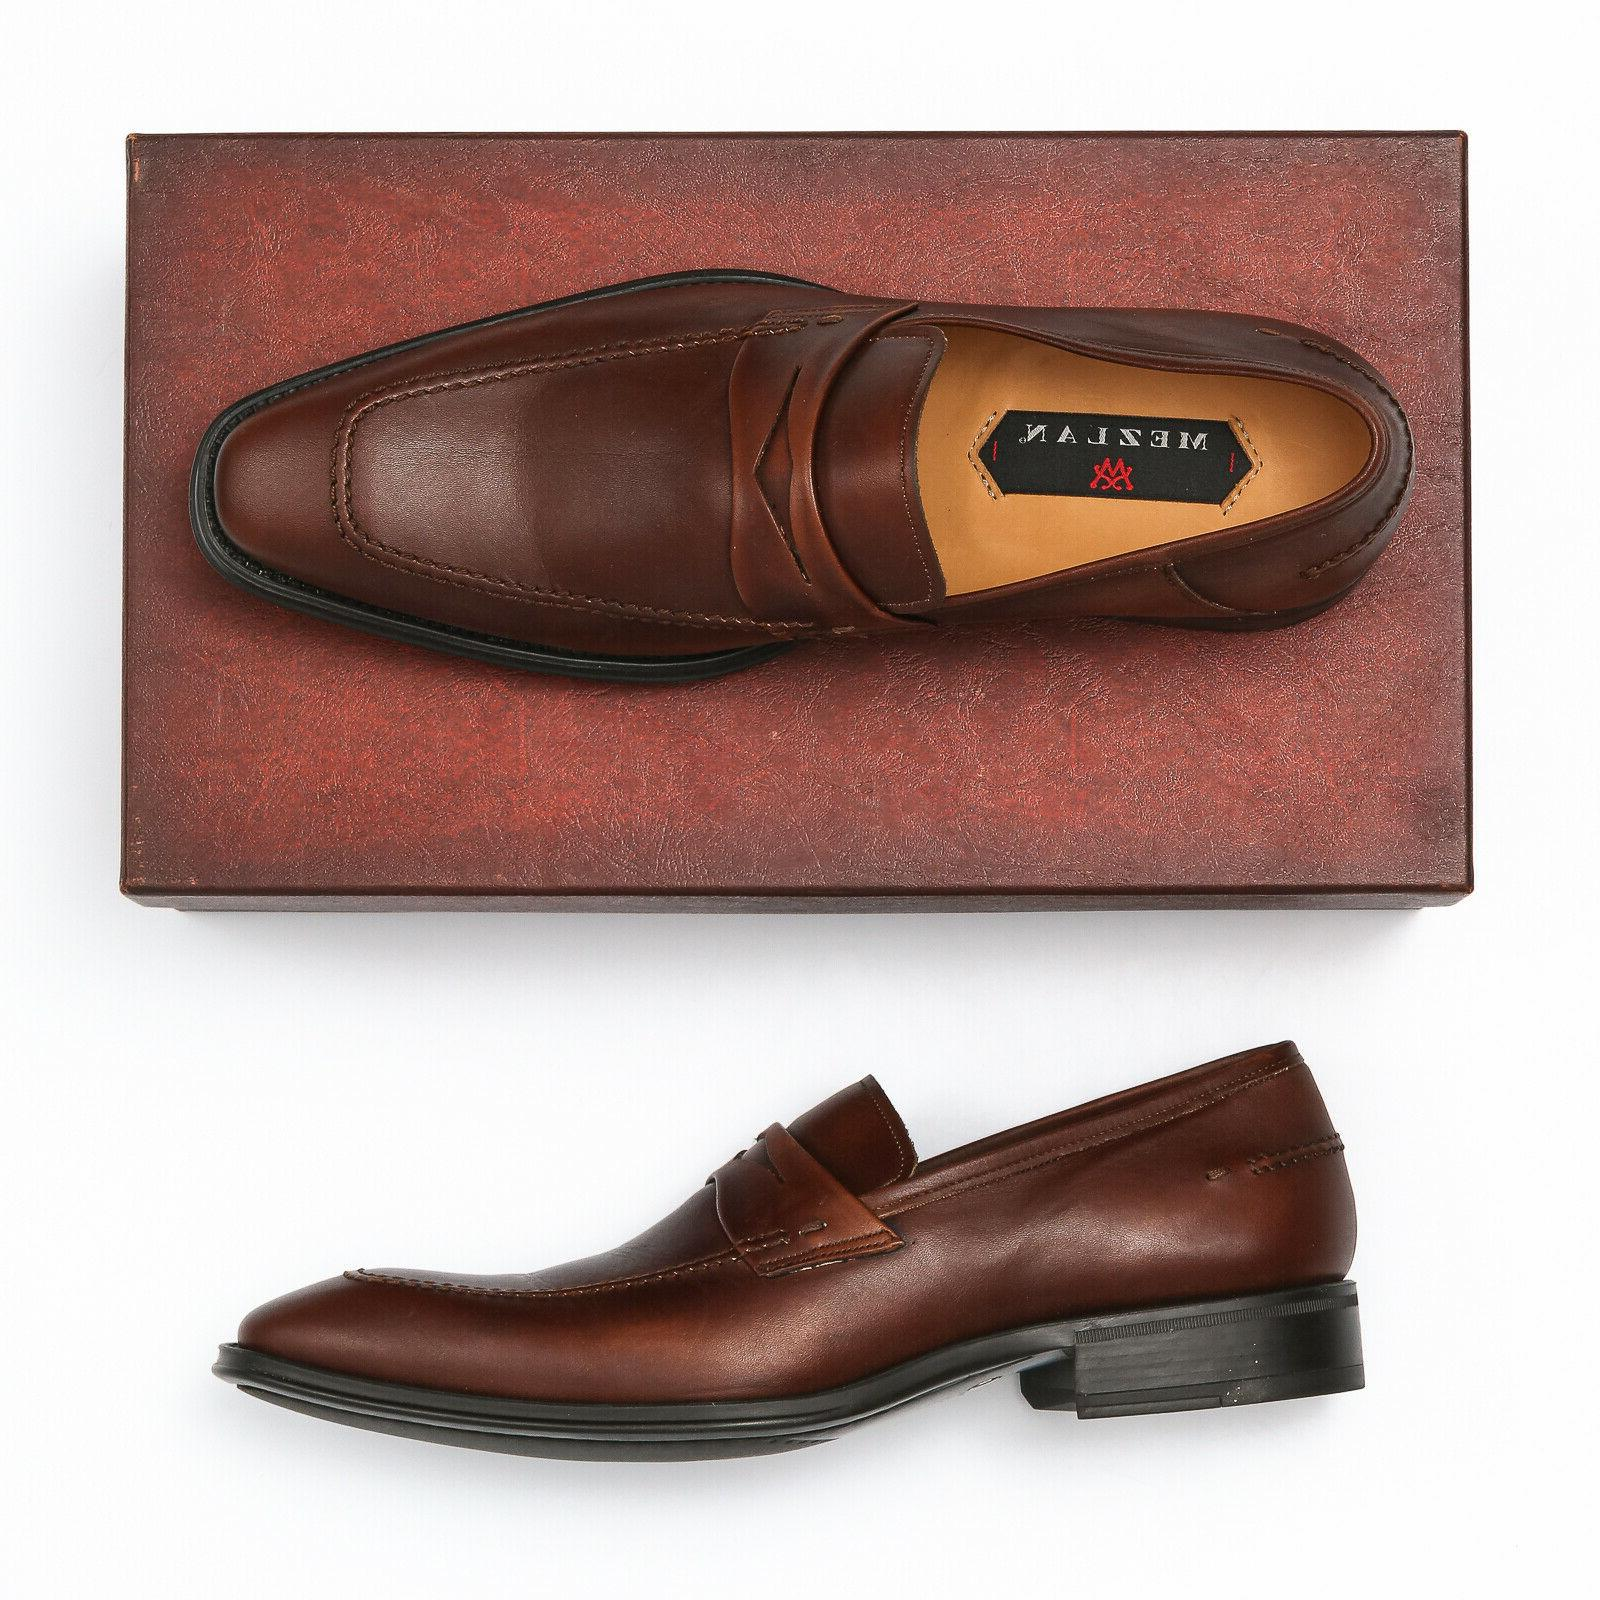 trento cognac brown penny loafers size 8